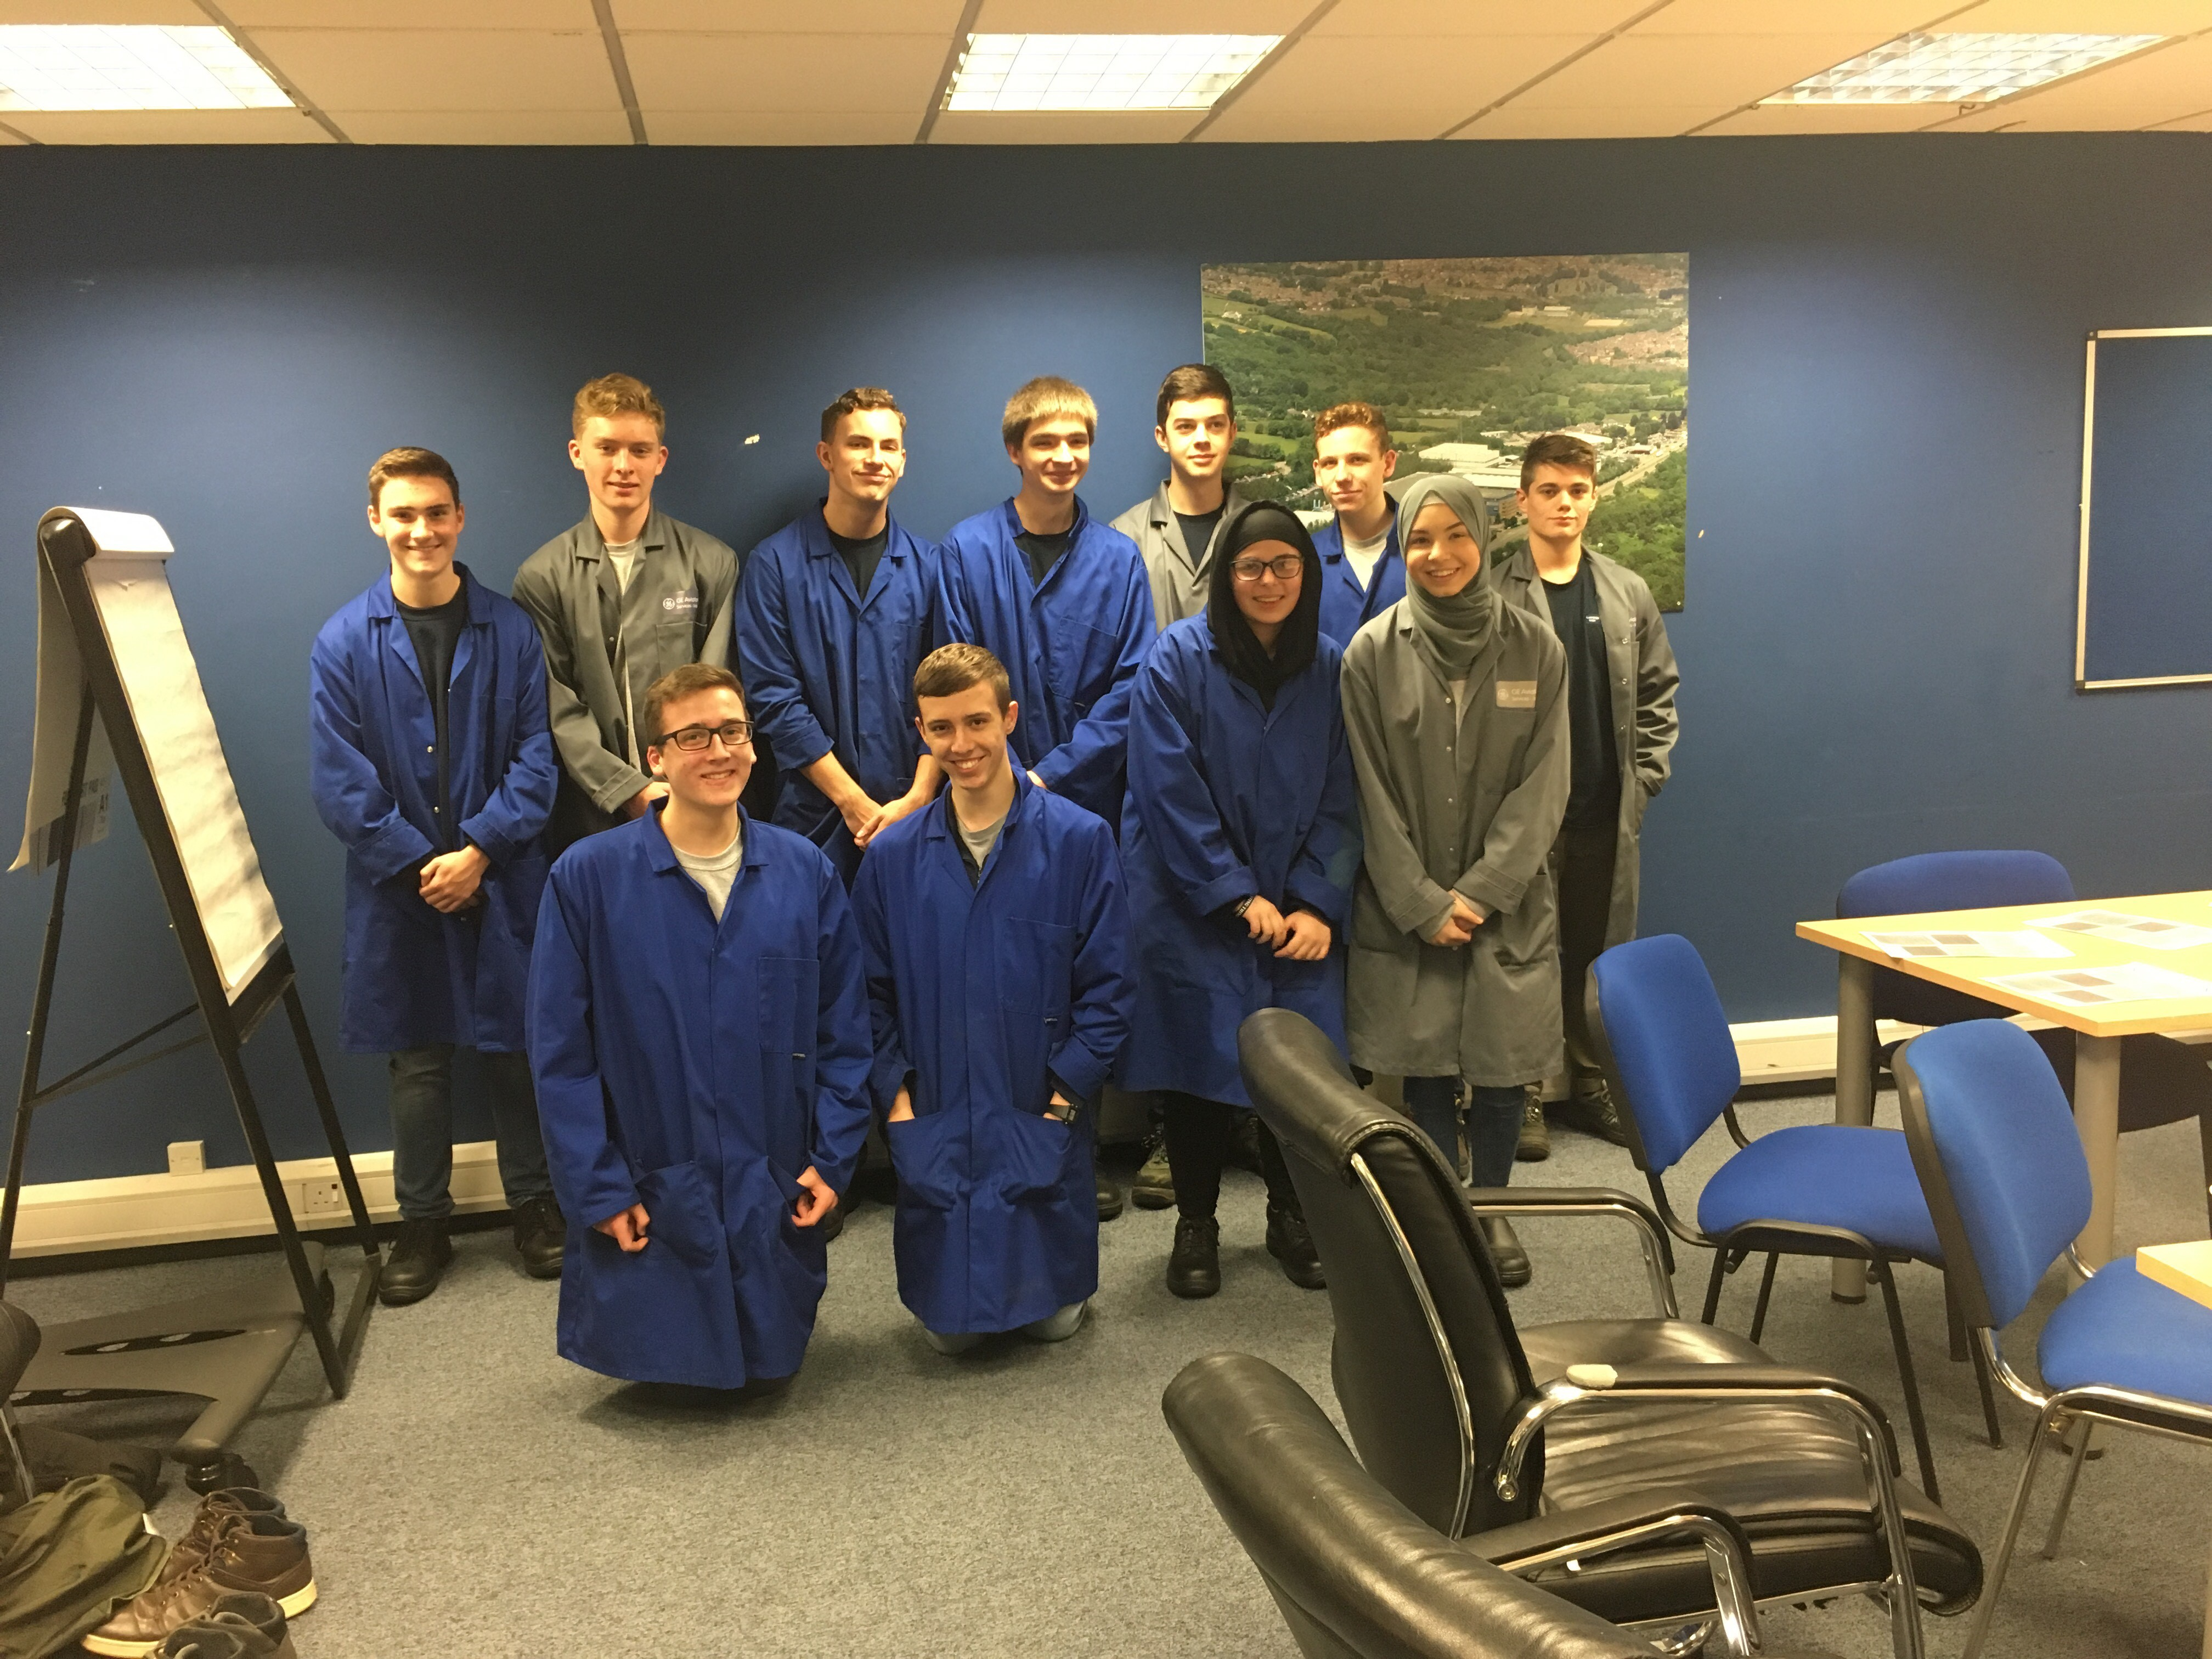 Year 12 trip to ge for EESW